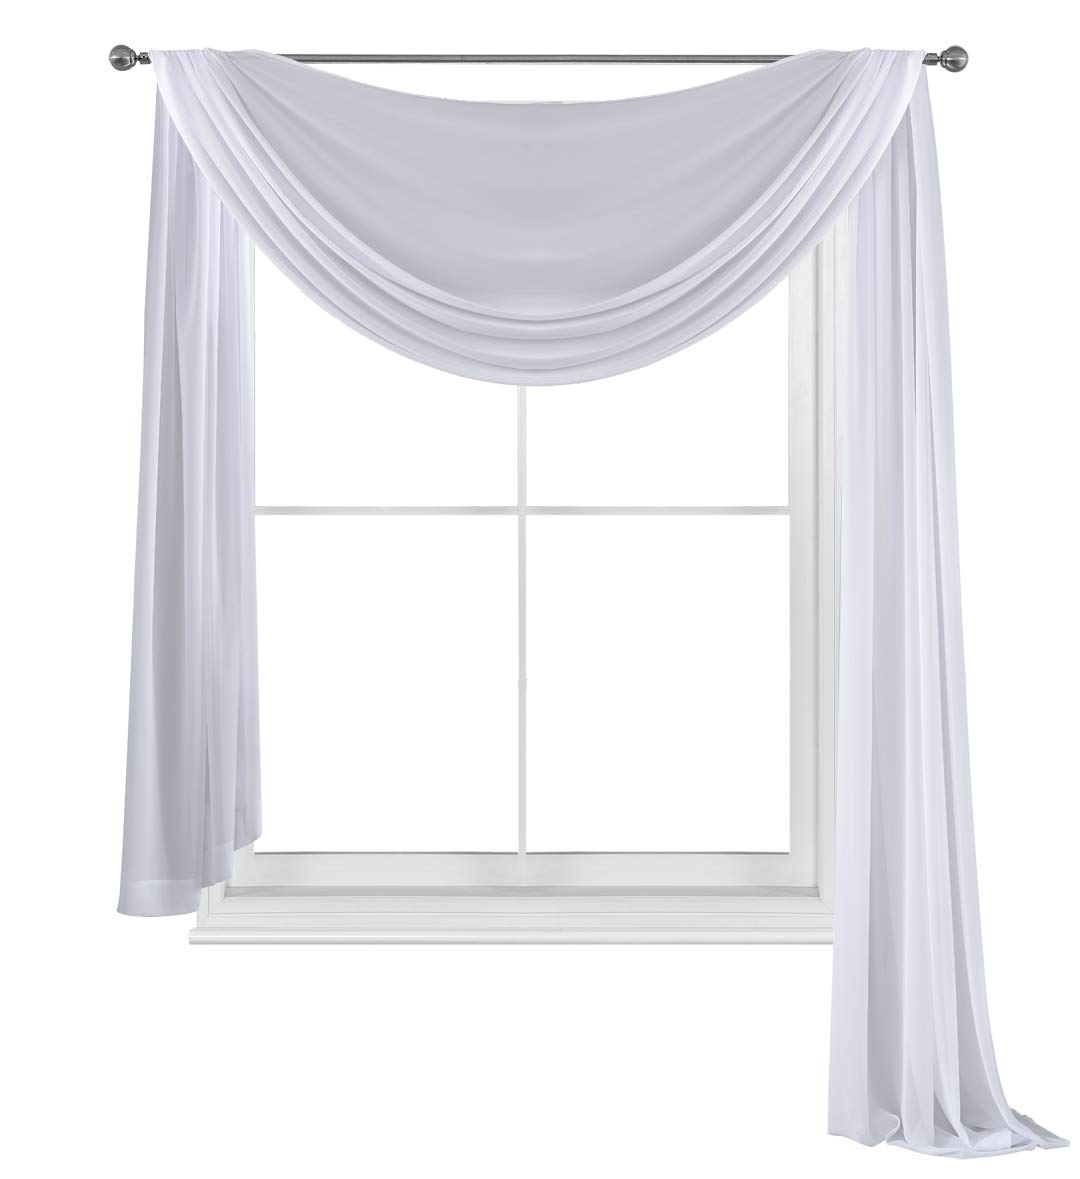 Amazoncom Wpm World Products Mart Beautiful White Elegance Window